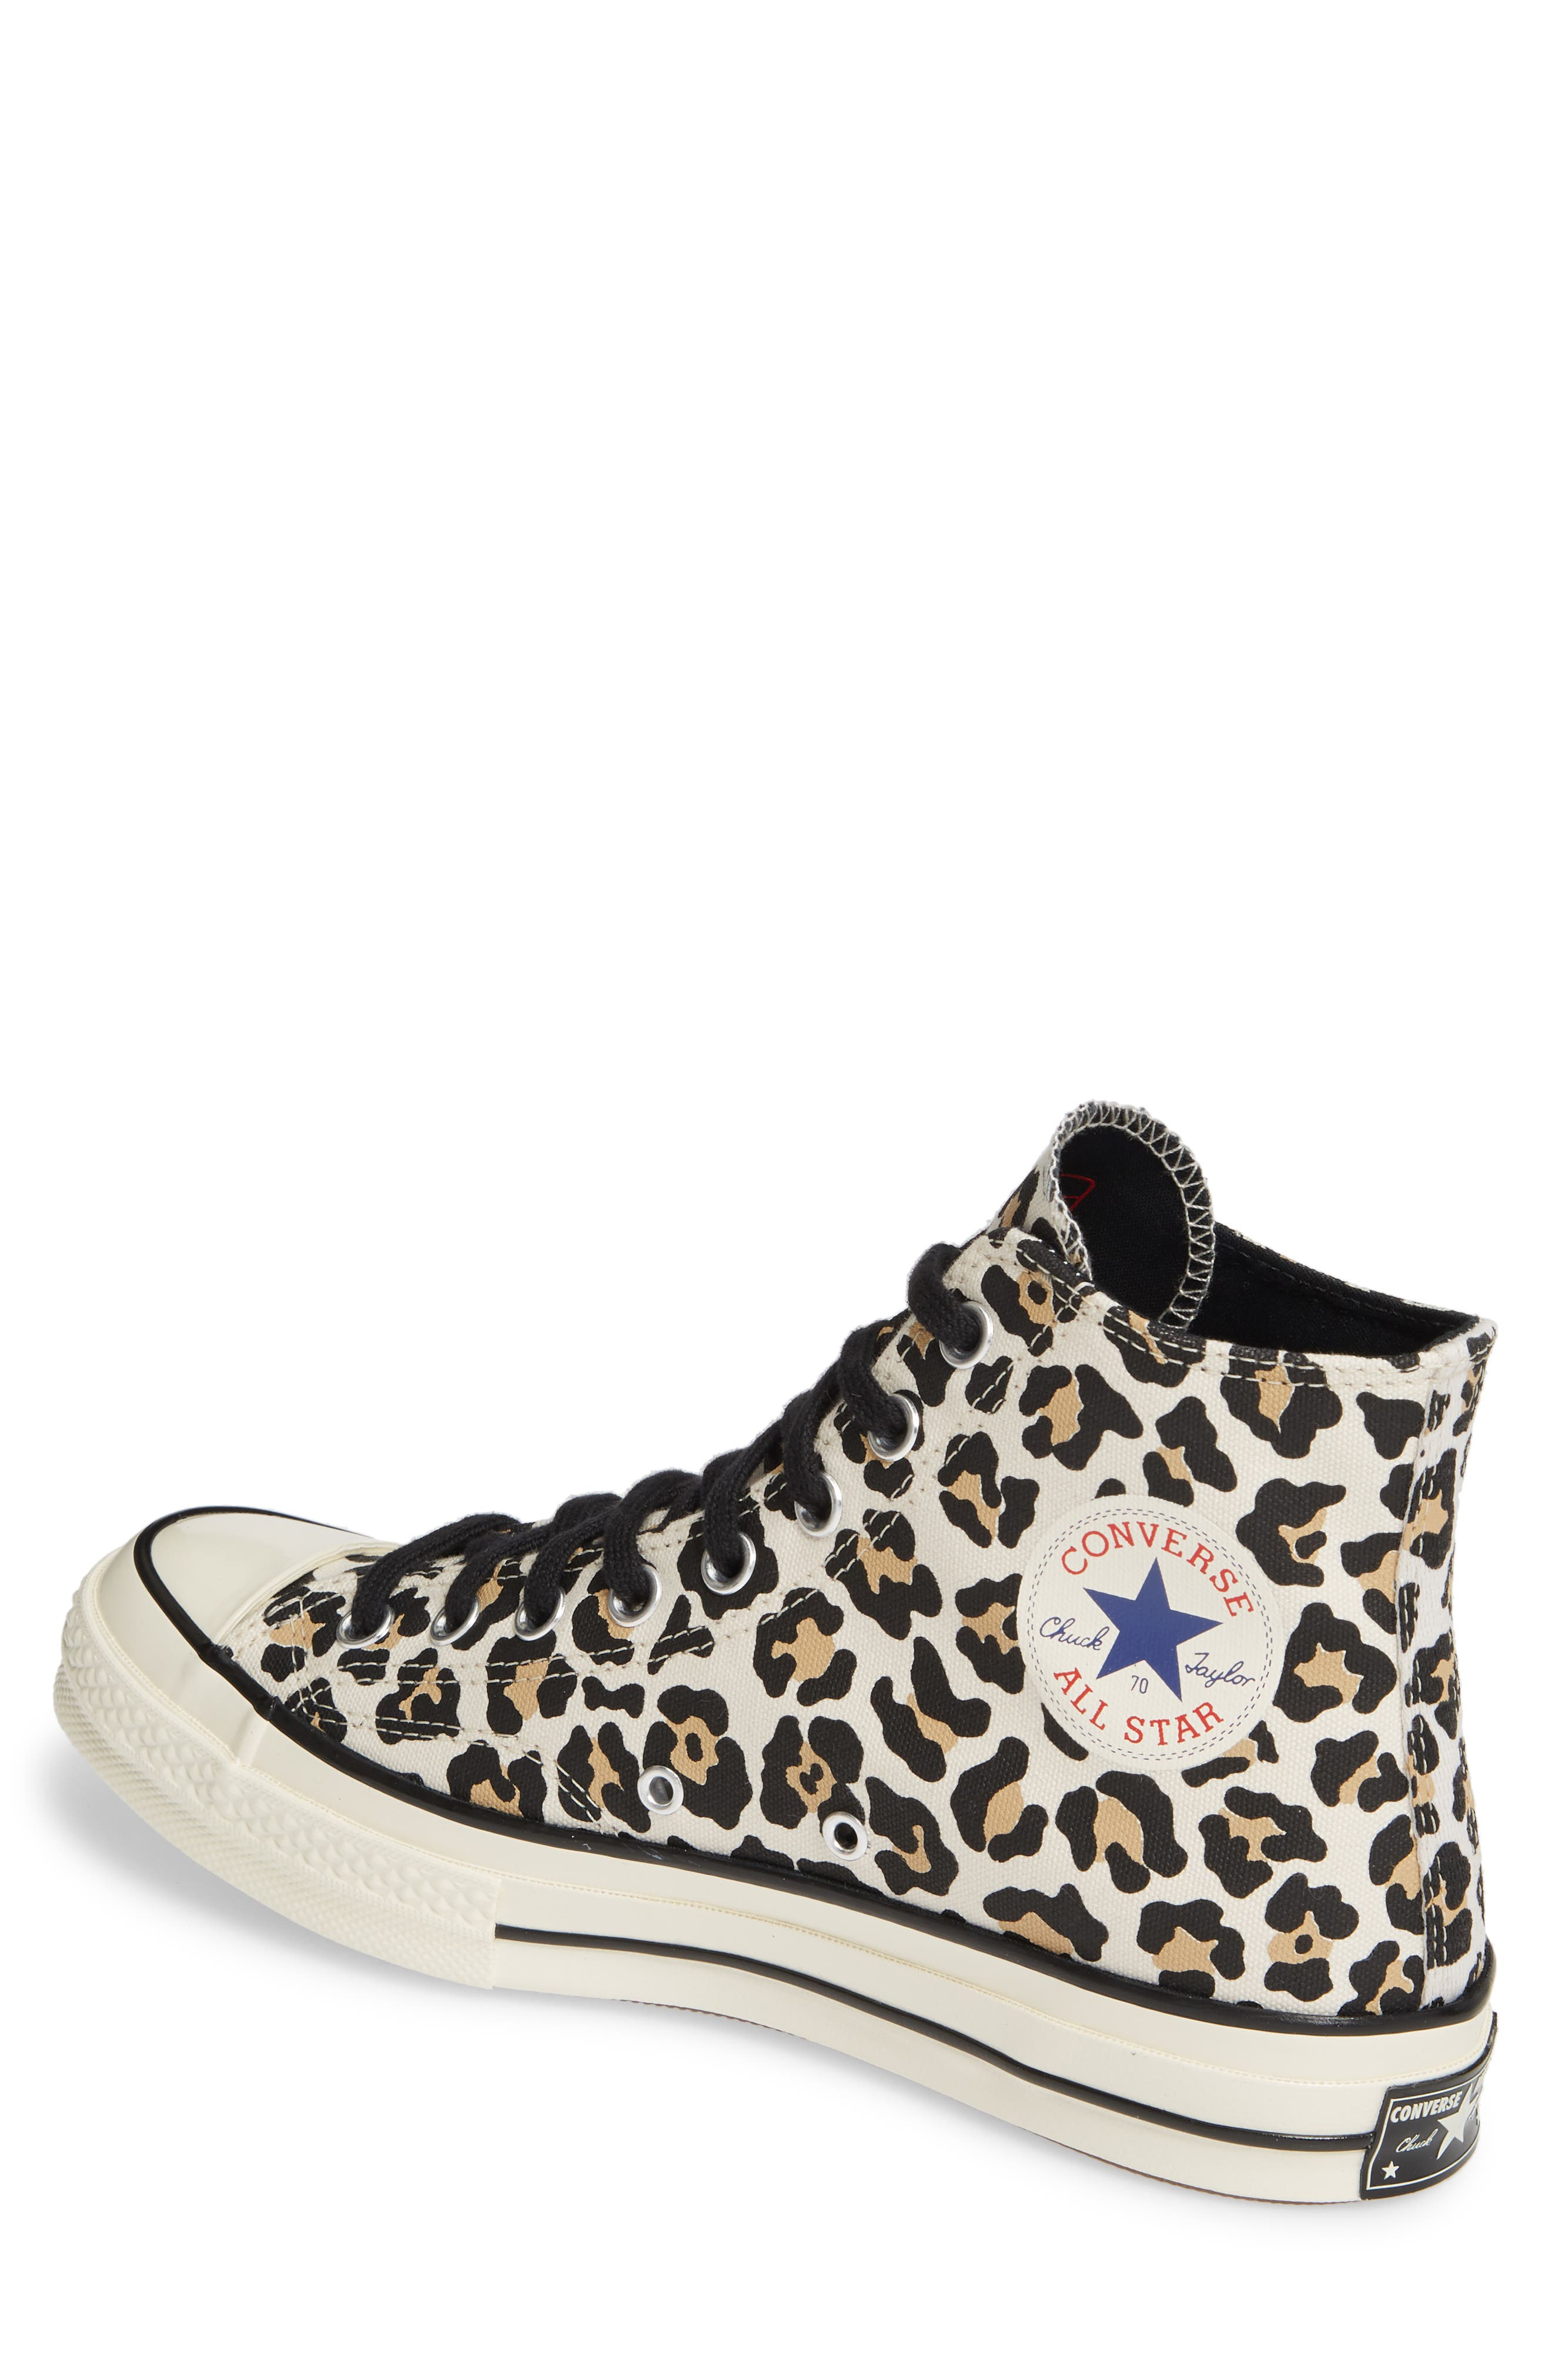 CONVERSE, Chuck Taylor<sup>®</sup> All Star<sup>®</sup> 70 High Top Sneaker, Alternate thumbnail 2, color, DRIFTWOOD/ LIGHT FAWN